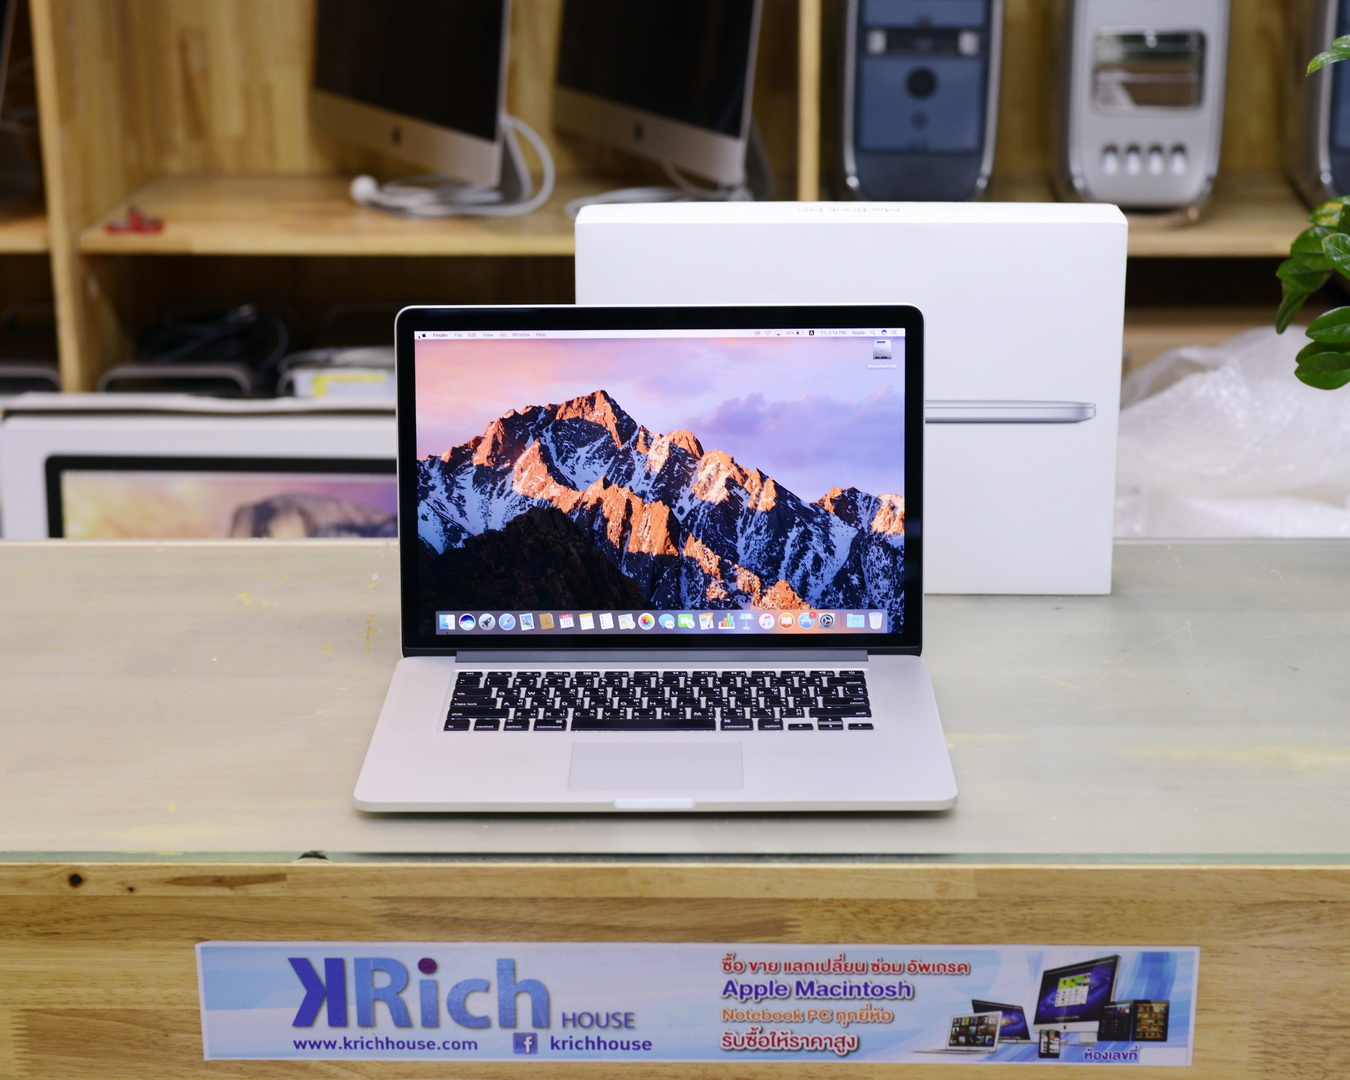 CTO - MacBook Pro (Retina 15-inch Late 2013) Quad-Core i7 2.6GHz RAM 16GB SSD 1TB GeForce GT 750M 2GB - Fullbox